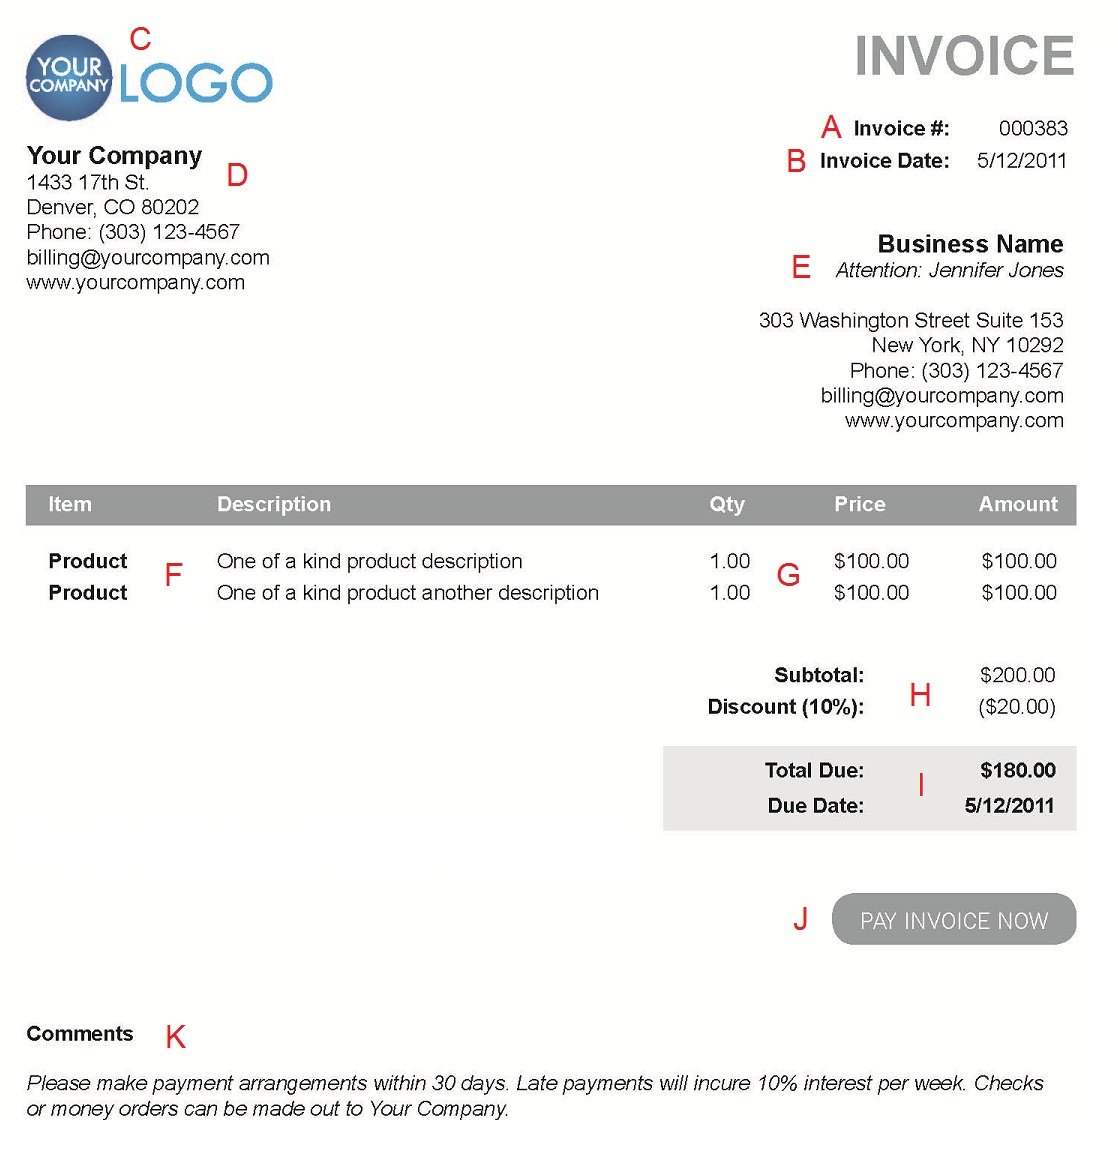 Maidofhonortoastus  Pleasing The  Different Sections Of An Electronic Payment Invoice With Magnificent A  With Enchanting Create A Invoice Free Also Find Invoice Price On Car In Addition Meaning Of Pro Forma Invoice And Free Proforma Invoice As Well As Invoice Edi Additionally Fillable Canada Customs Invoice From Paysimplecom With Maidofhonortoastus  Magnificent The  Different Sections Of An Electronic Payment Invoice With Enchanting A  And Pleasing Create A Invoice Free Also Find Invoice Price On Car In Addition Meaning Of Pro Forma Invoice From Paysimplecom